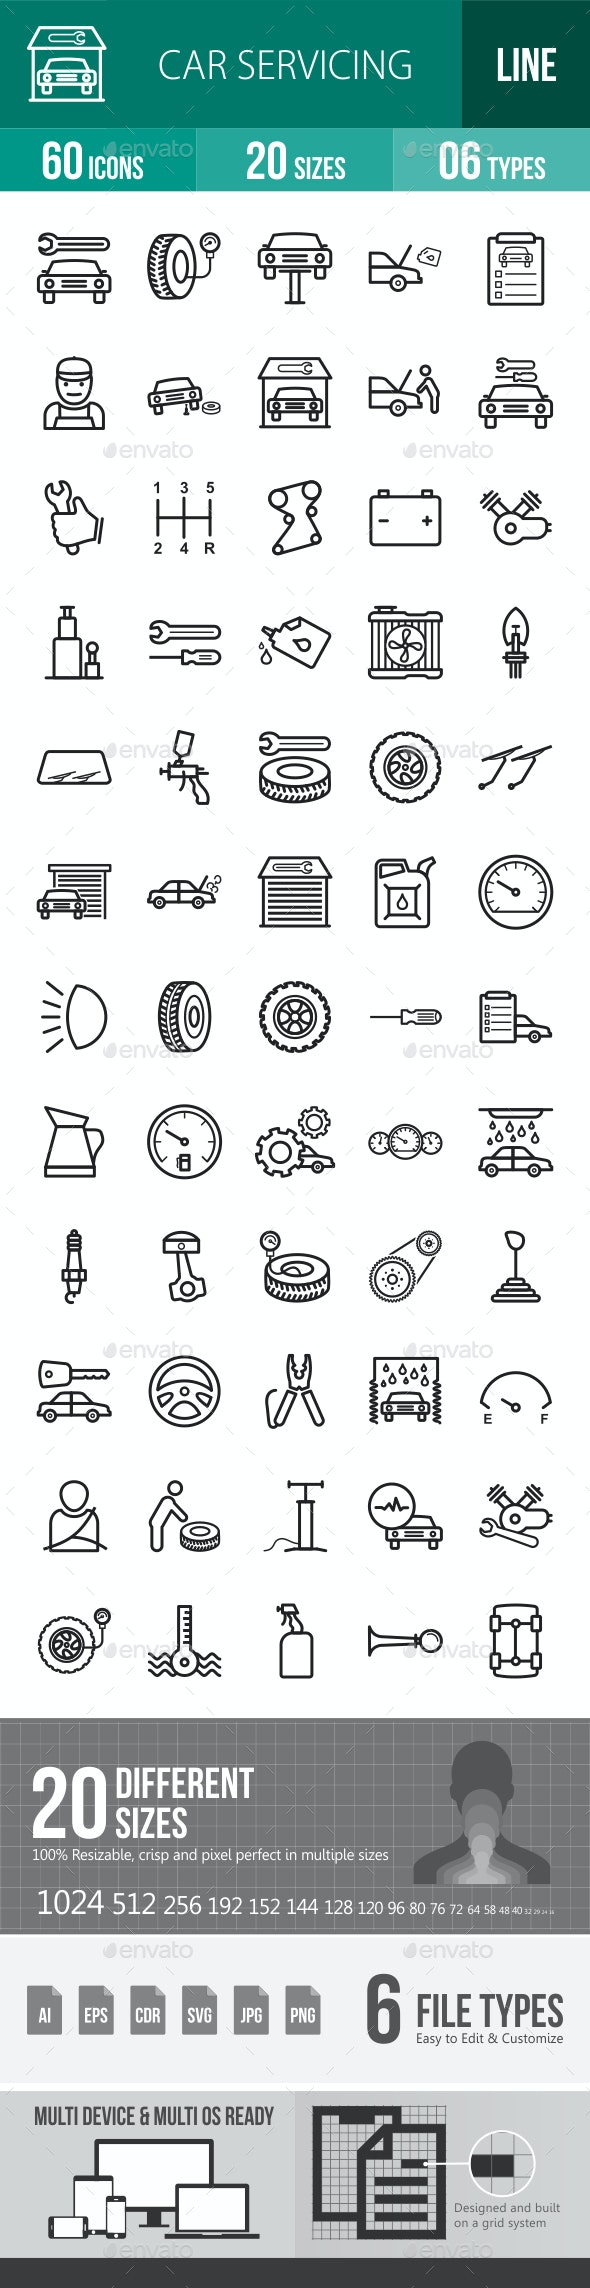 Car Servicing Line Icons - Icons